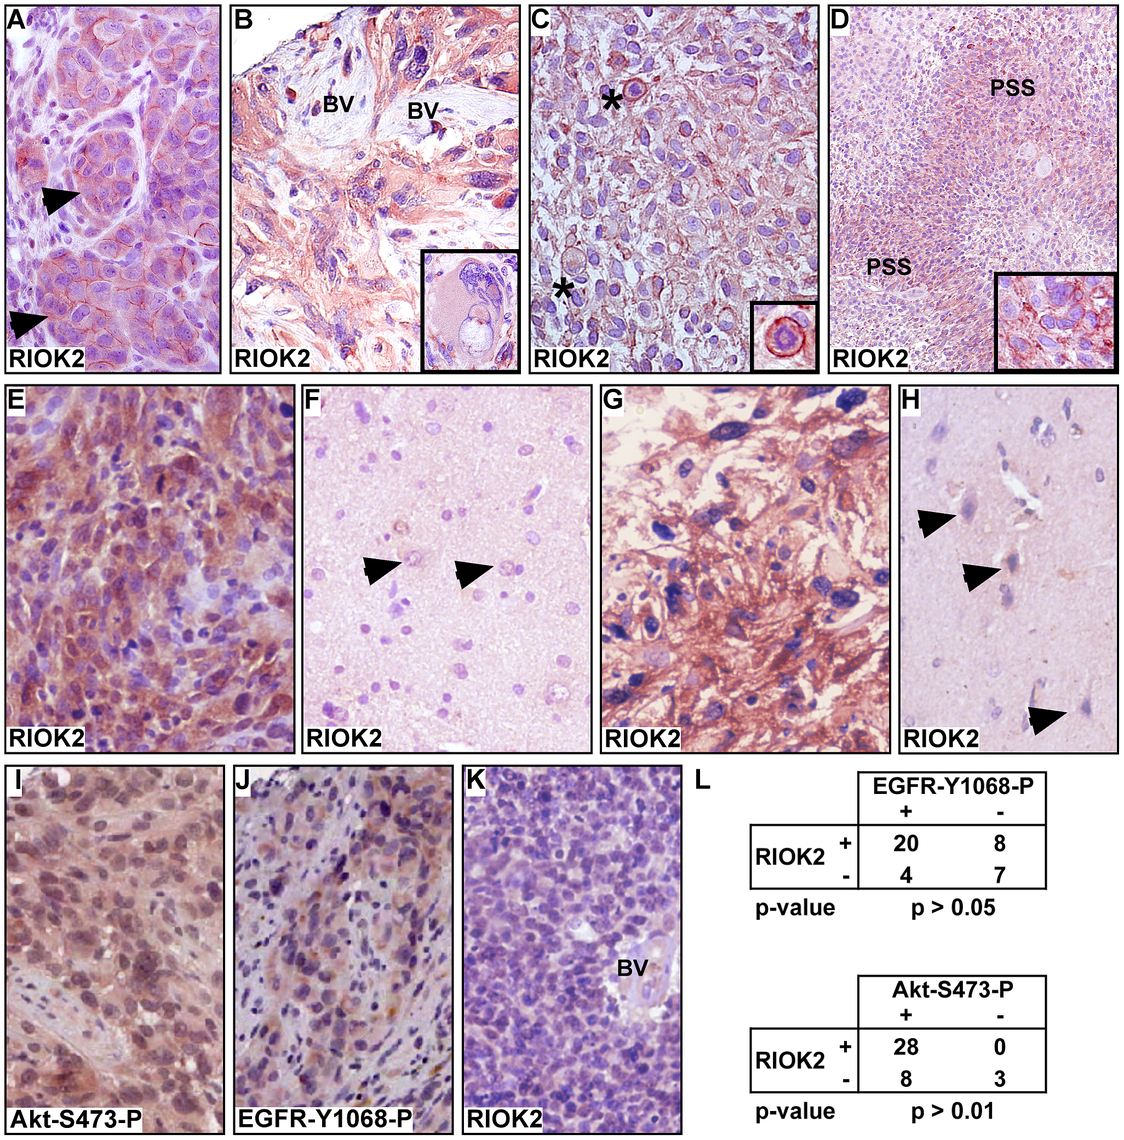 RIOK2 overexpression in GBM tumors is associated with Akt signaling.